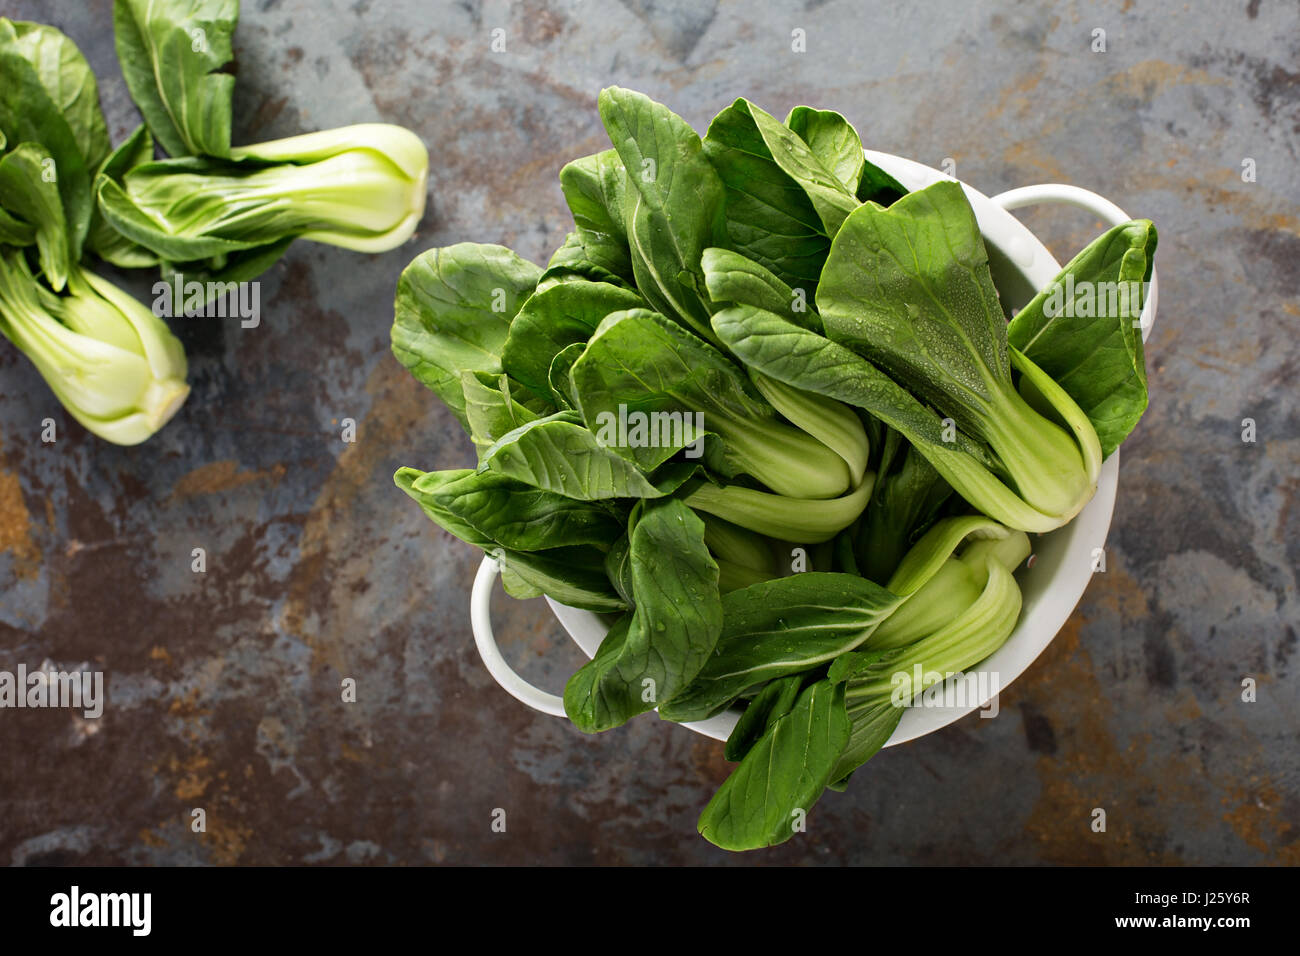 Fresh washed baby bok choy in a colander - Stock Image